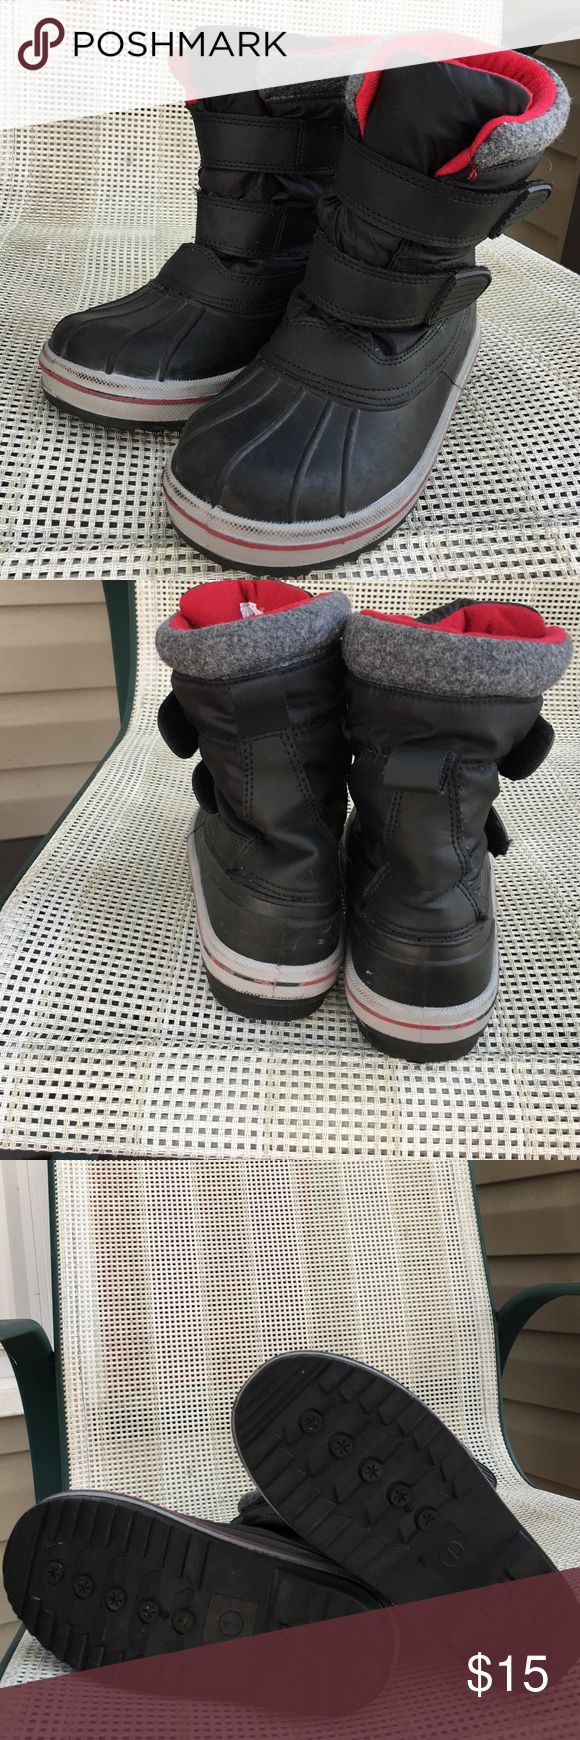 Thermalite boys snow boots Very nice boys insulated snow boots Velcro straps close pull on rubber bottoms Thermalite Shoes Rain & Snow Boots